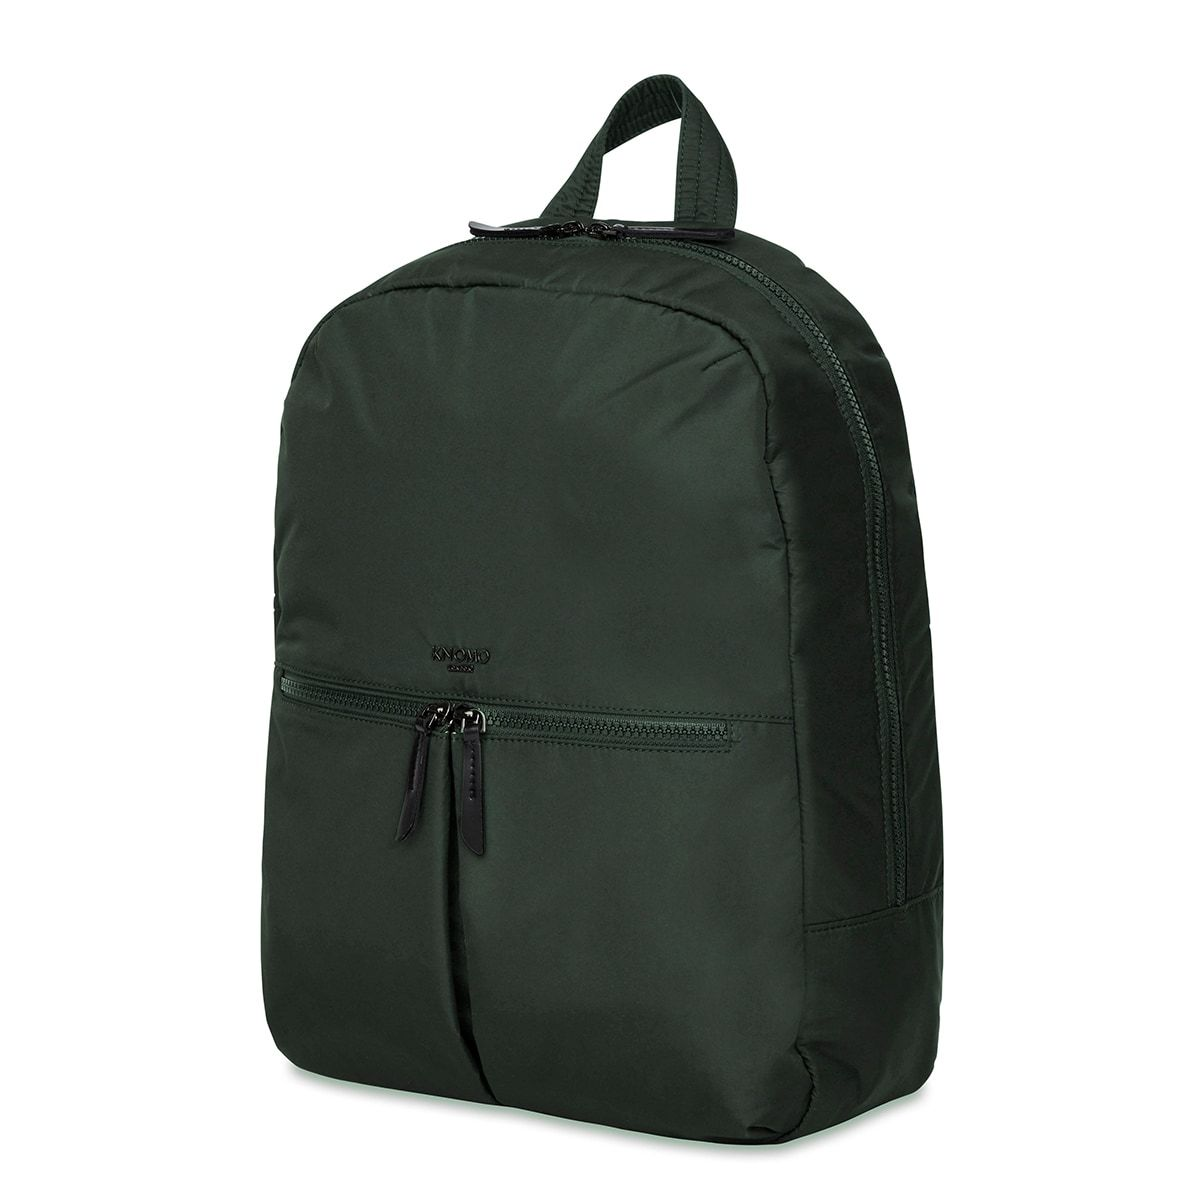 "KNOMO Berlin Laptop Backpack Three Quarter View 15"" -  Bottle Green 